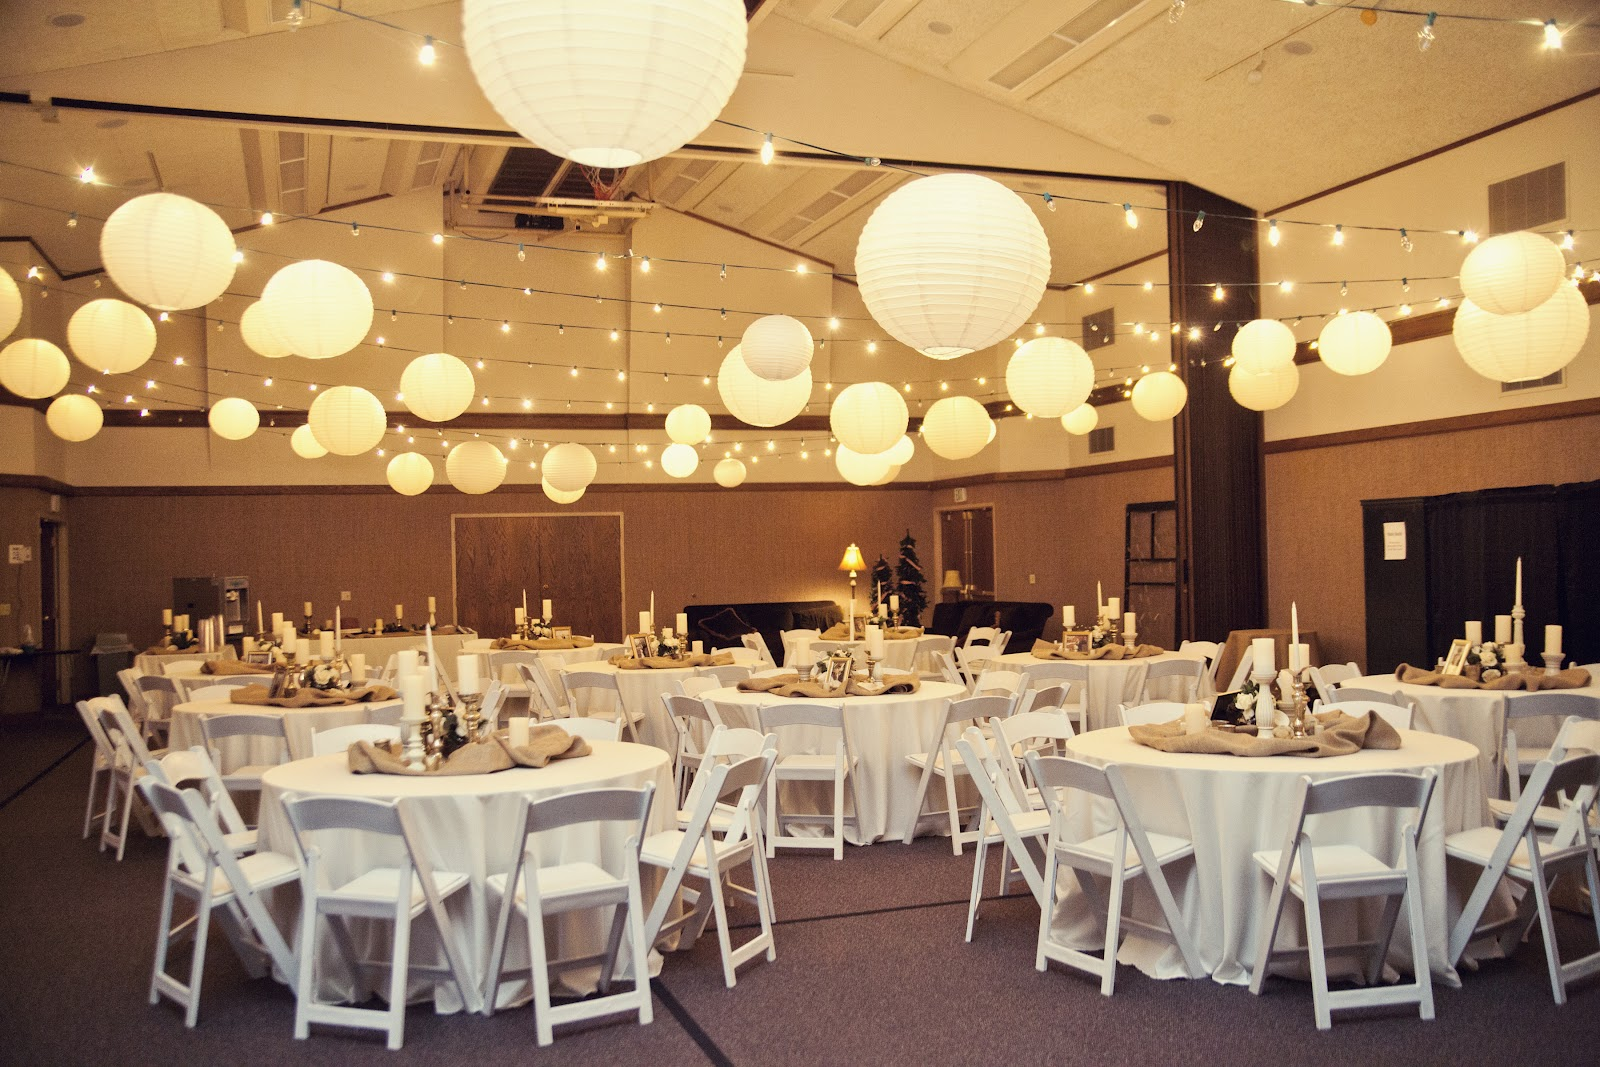 beehive art salon wedding